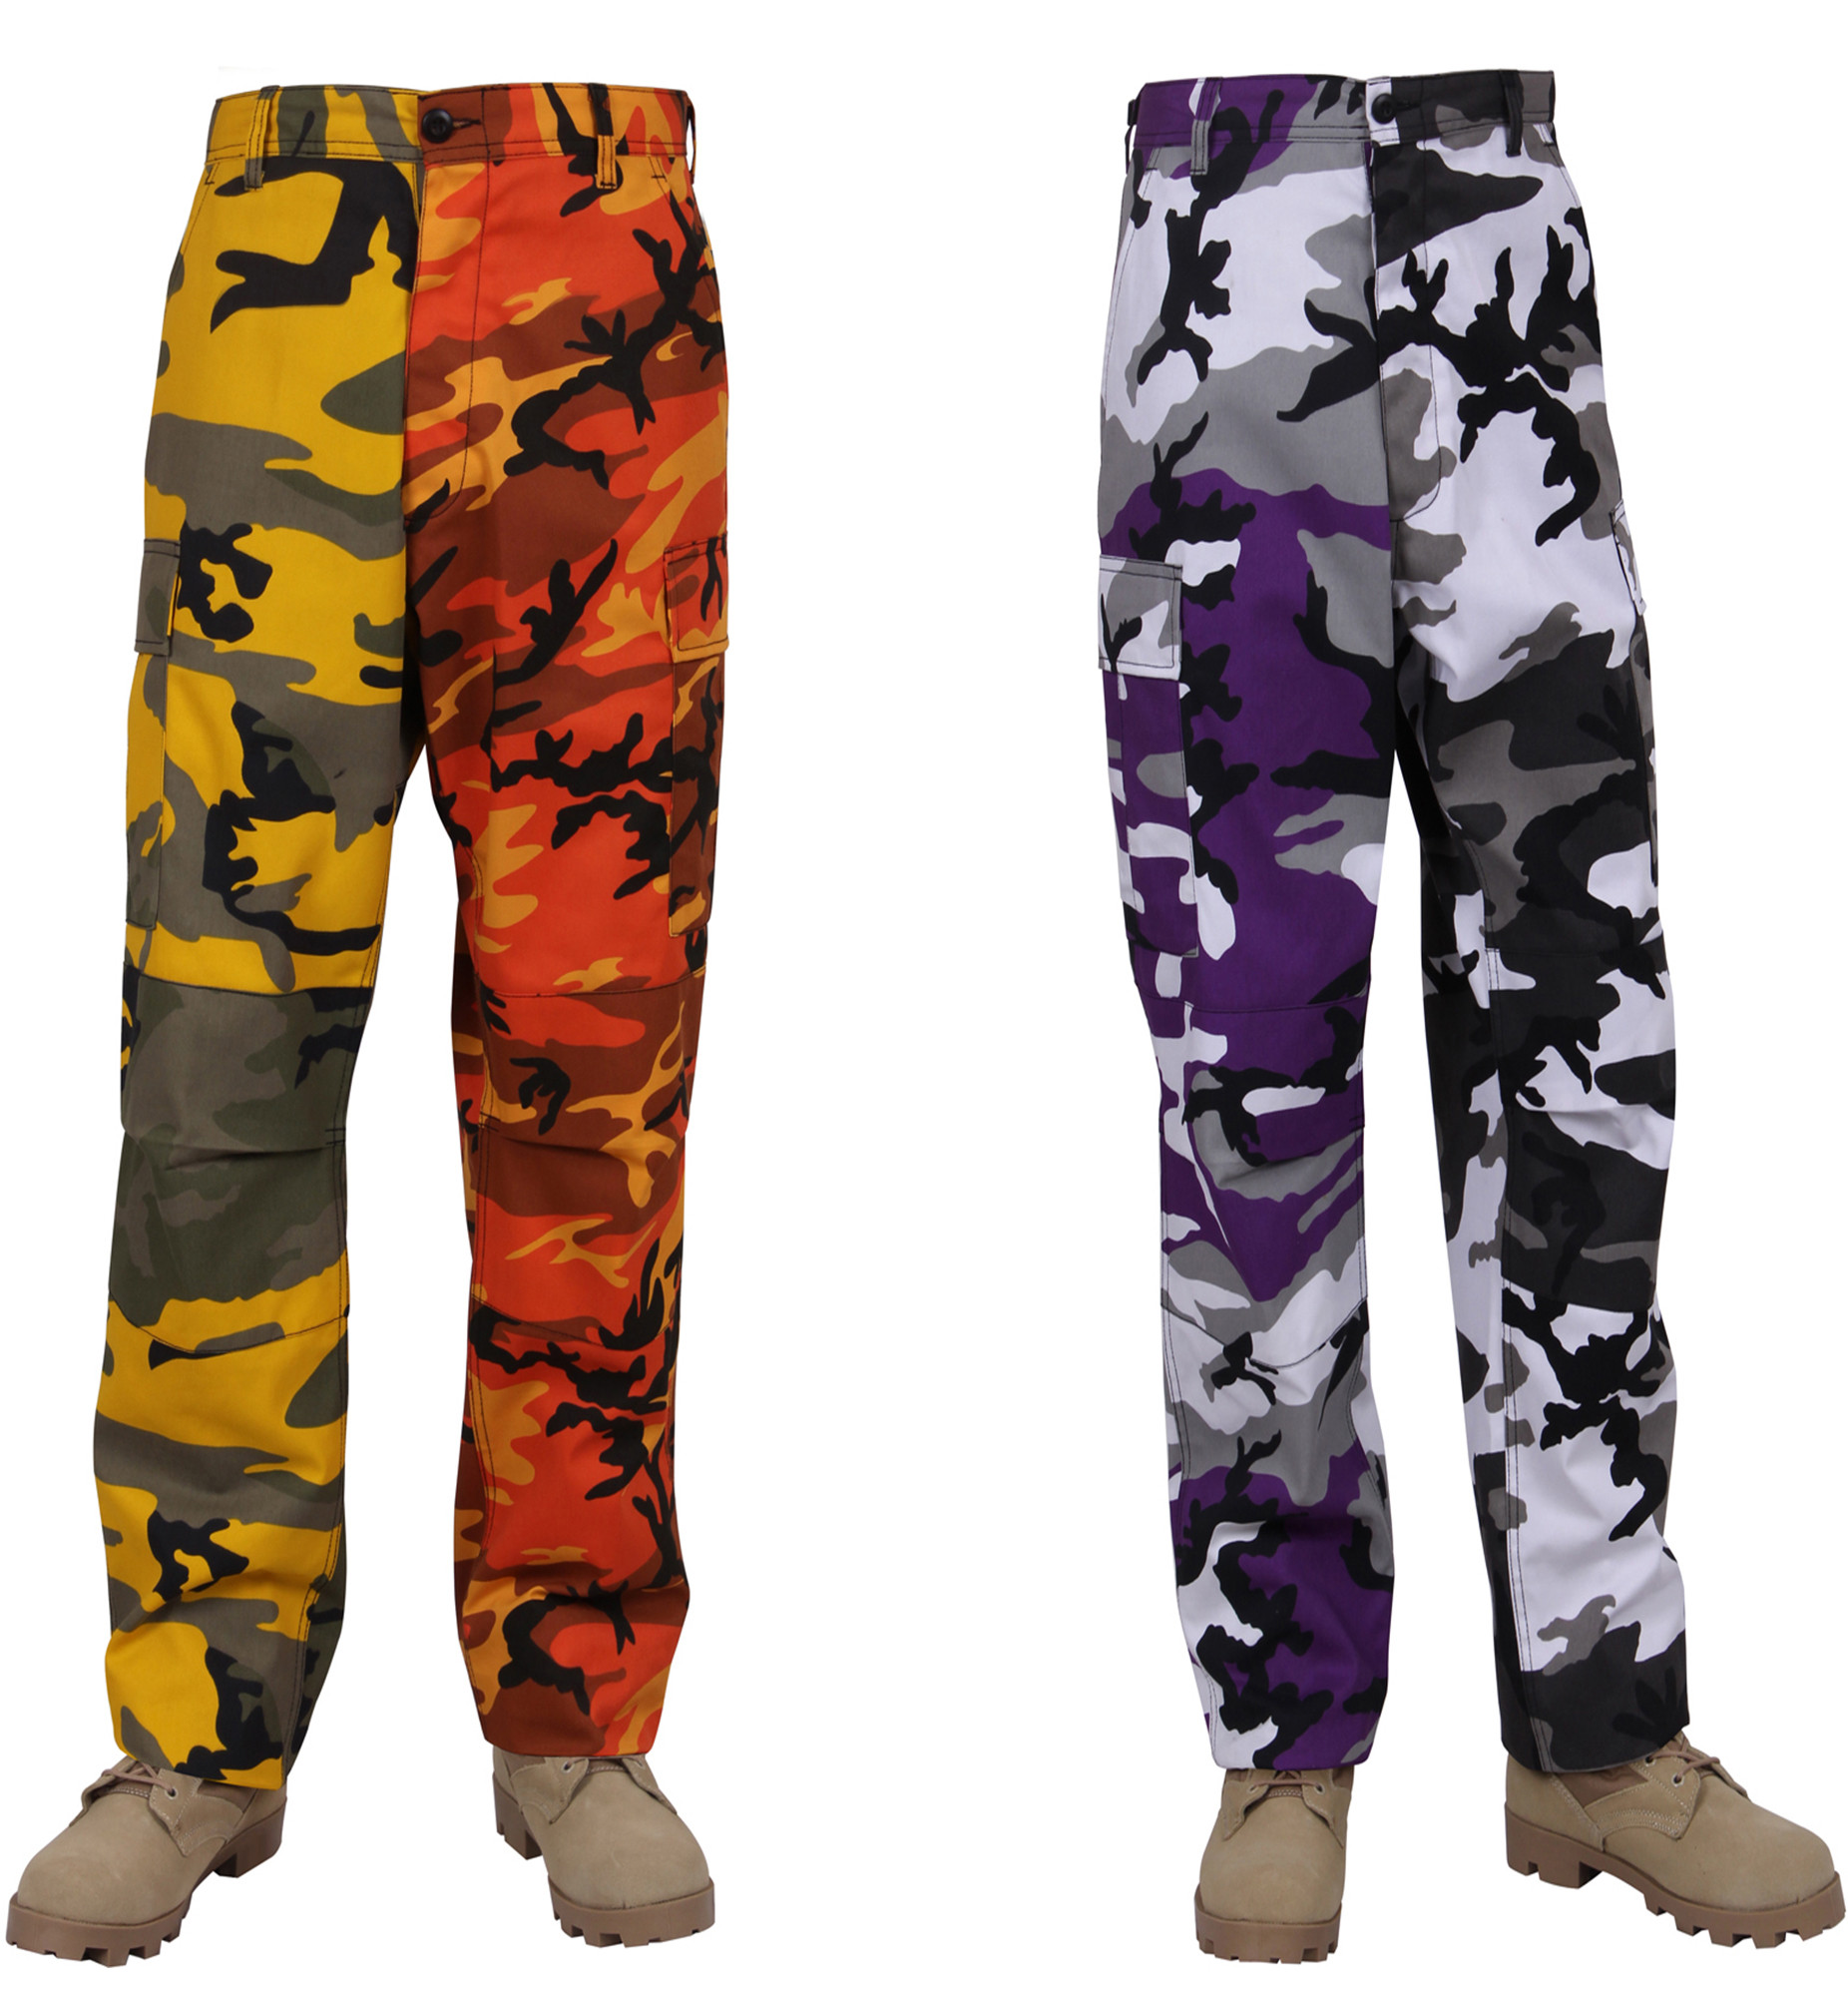 Two-Tone Camo BDU Pants cddca4df18a